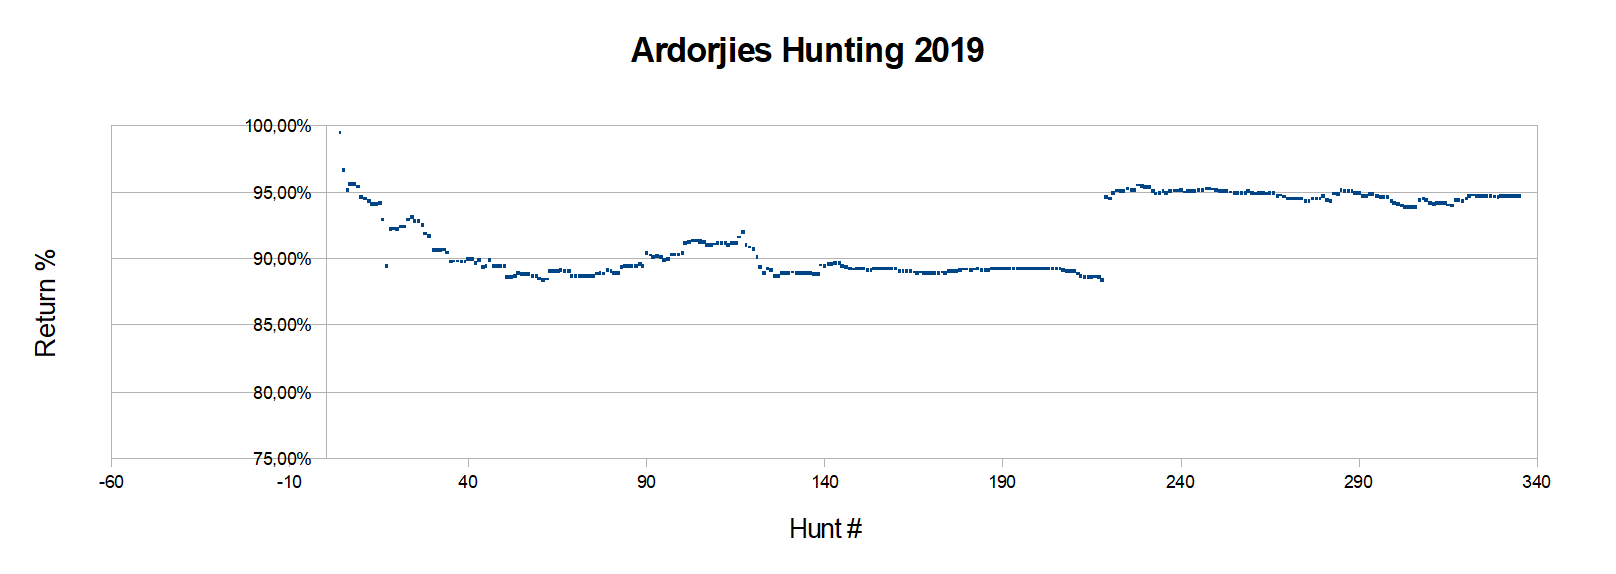 Ardorjies Hunting 2019-A.png